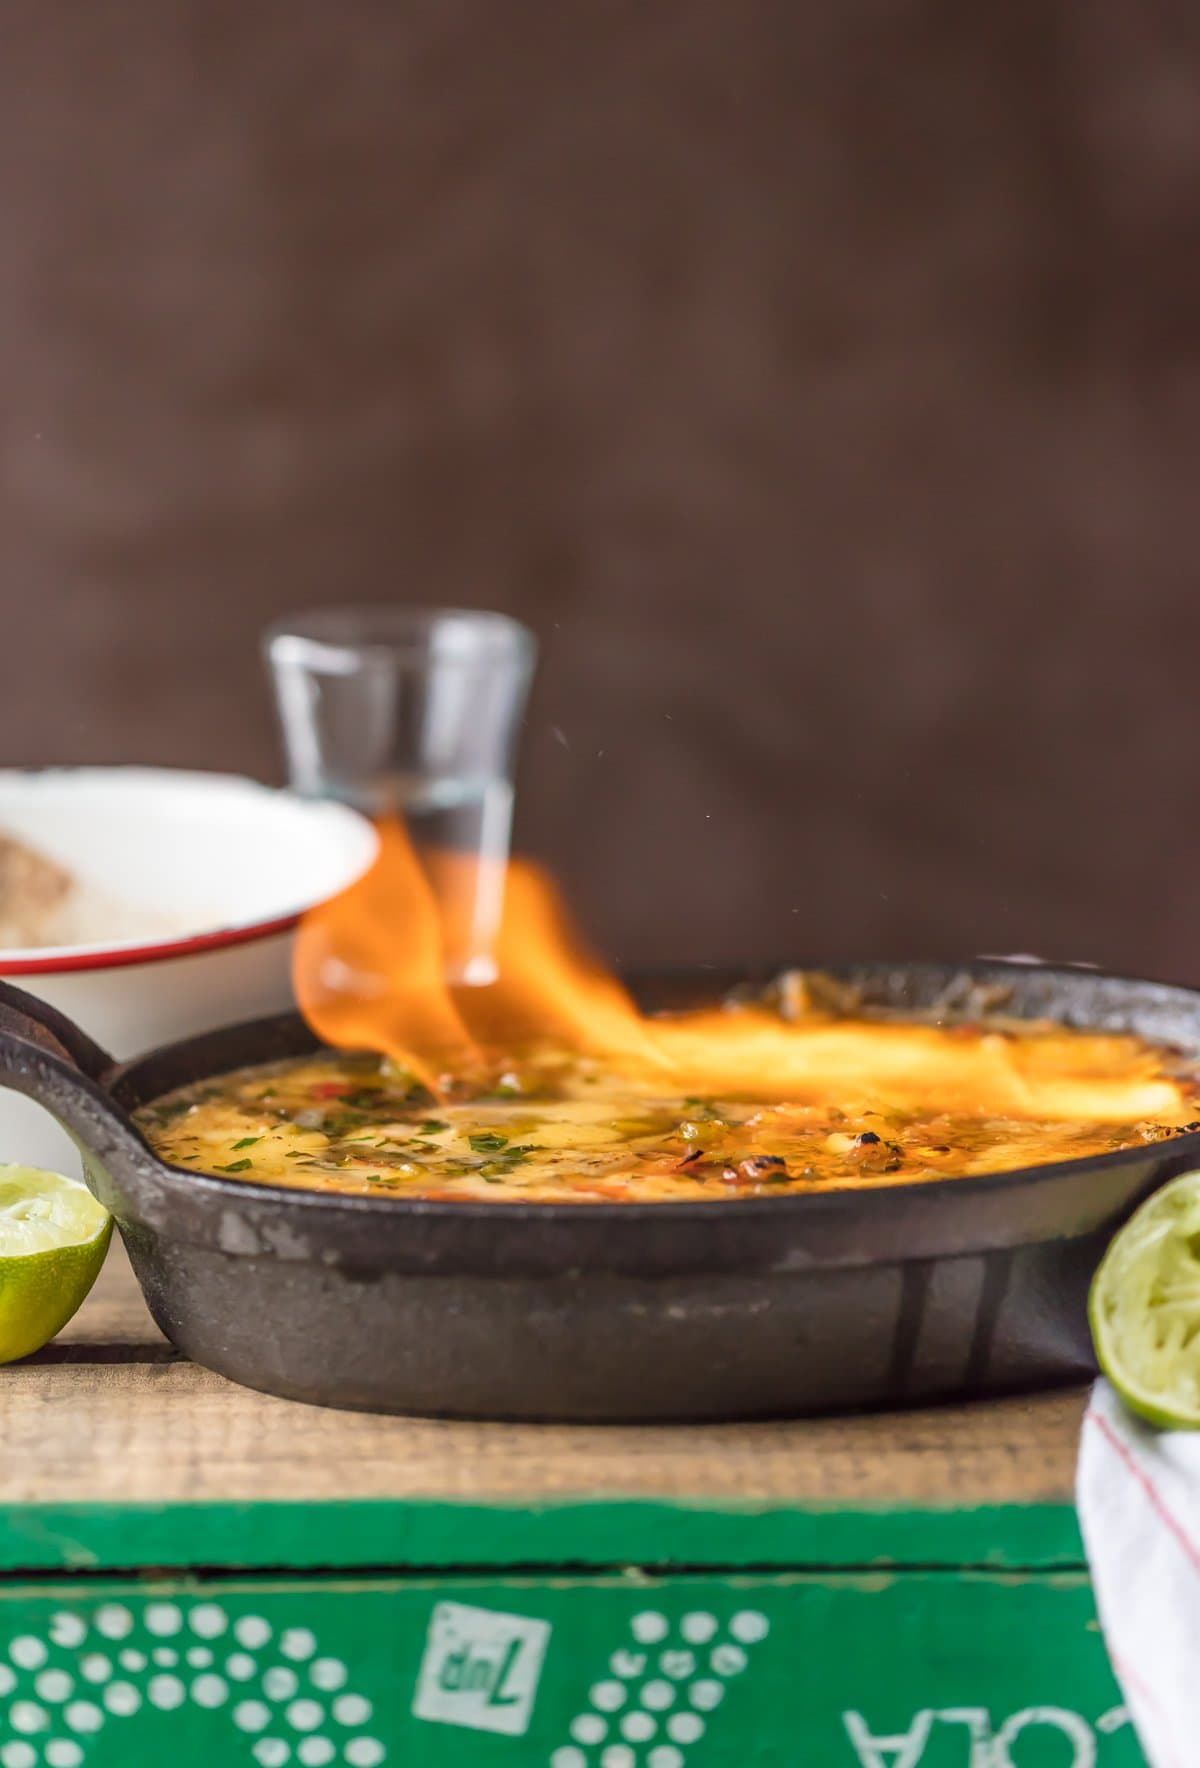 Tequila Lime Flaming Cheese Dip in a skillet